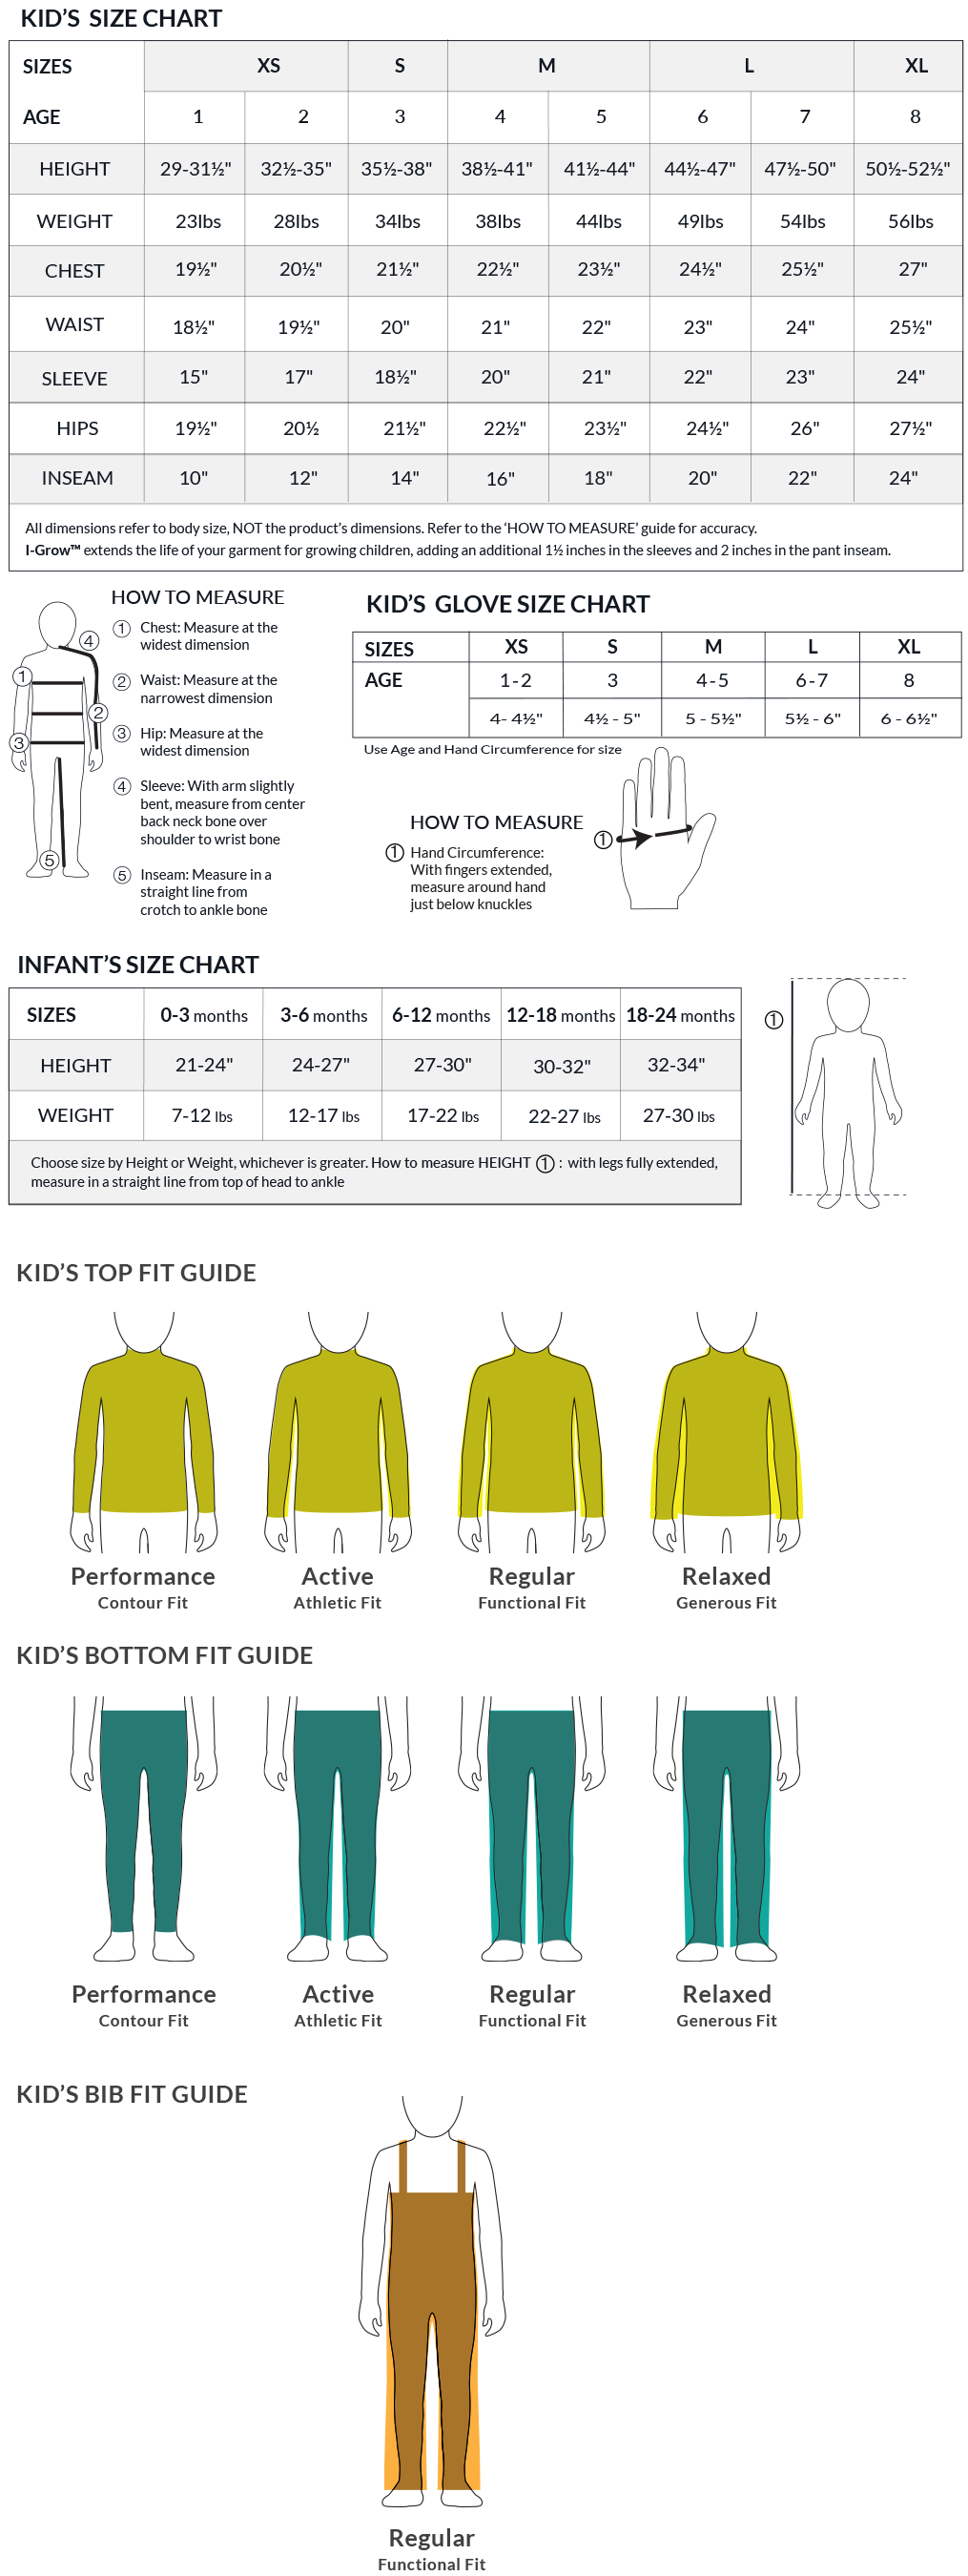 Obermeyer Kid's Size Charts and Fit Guide